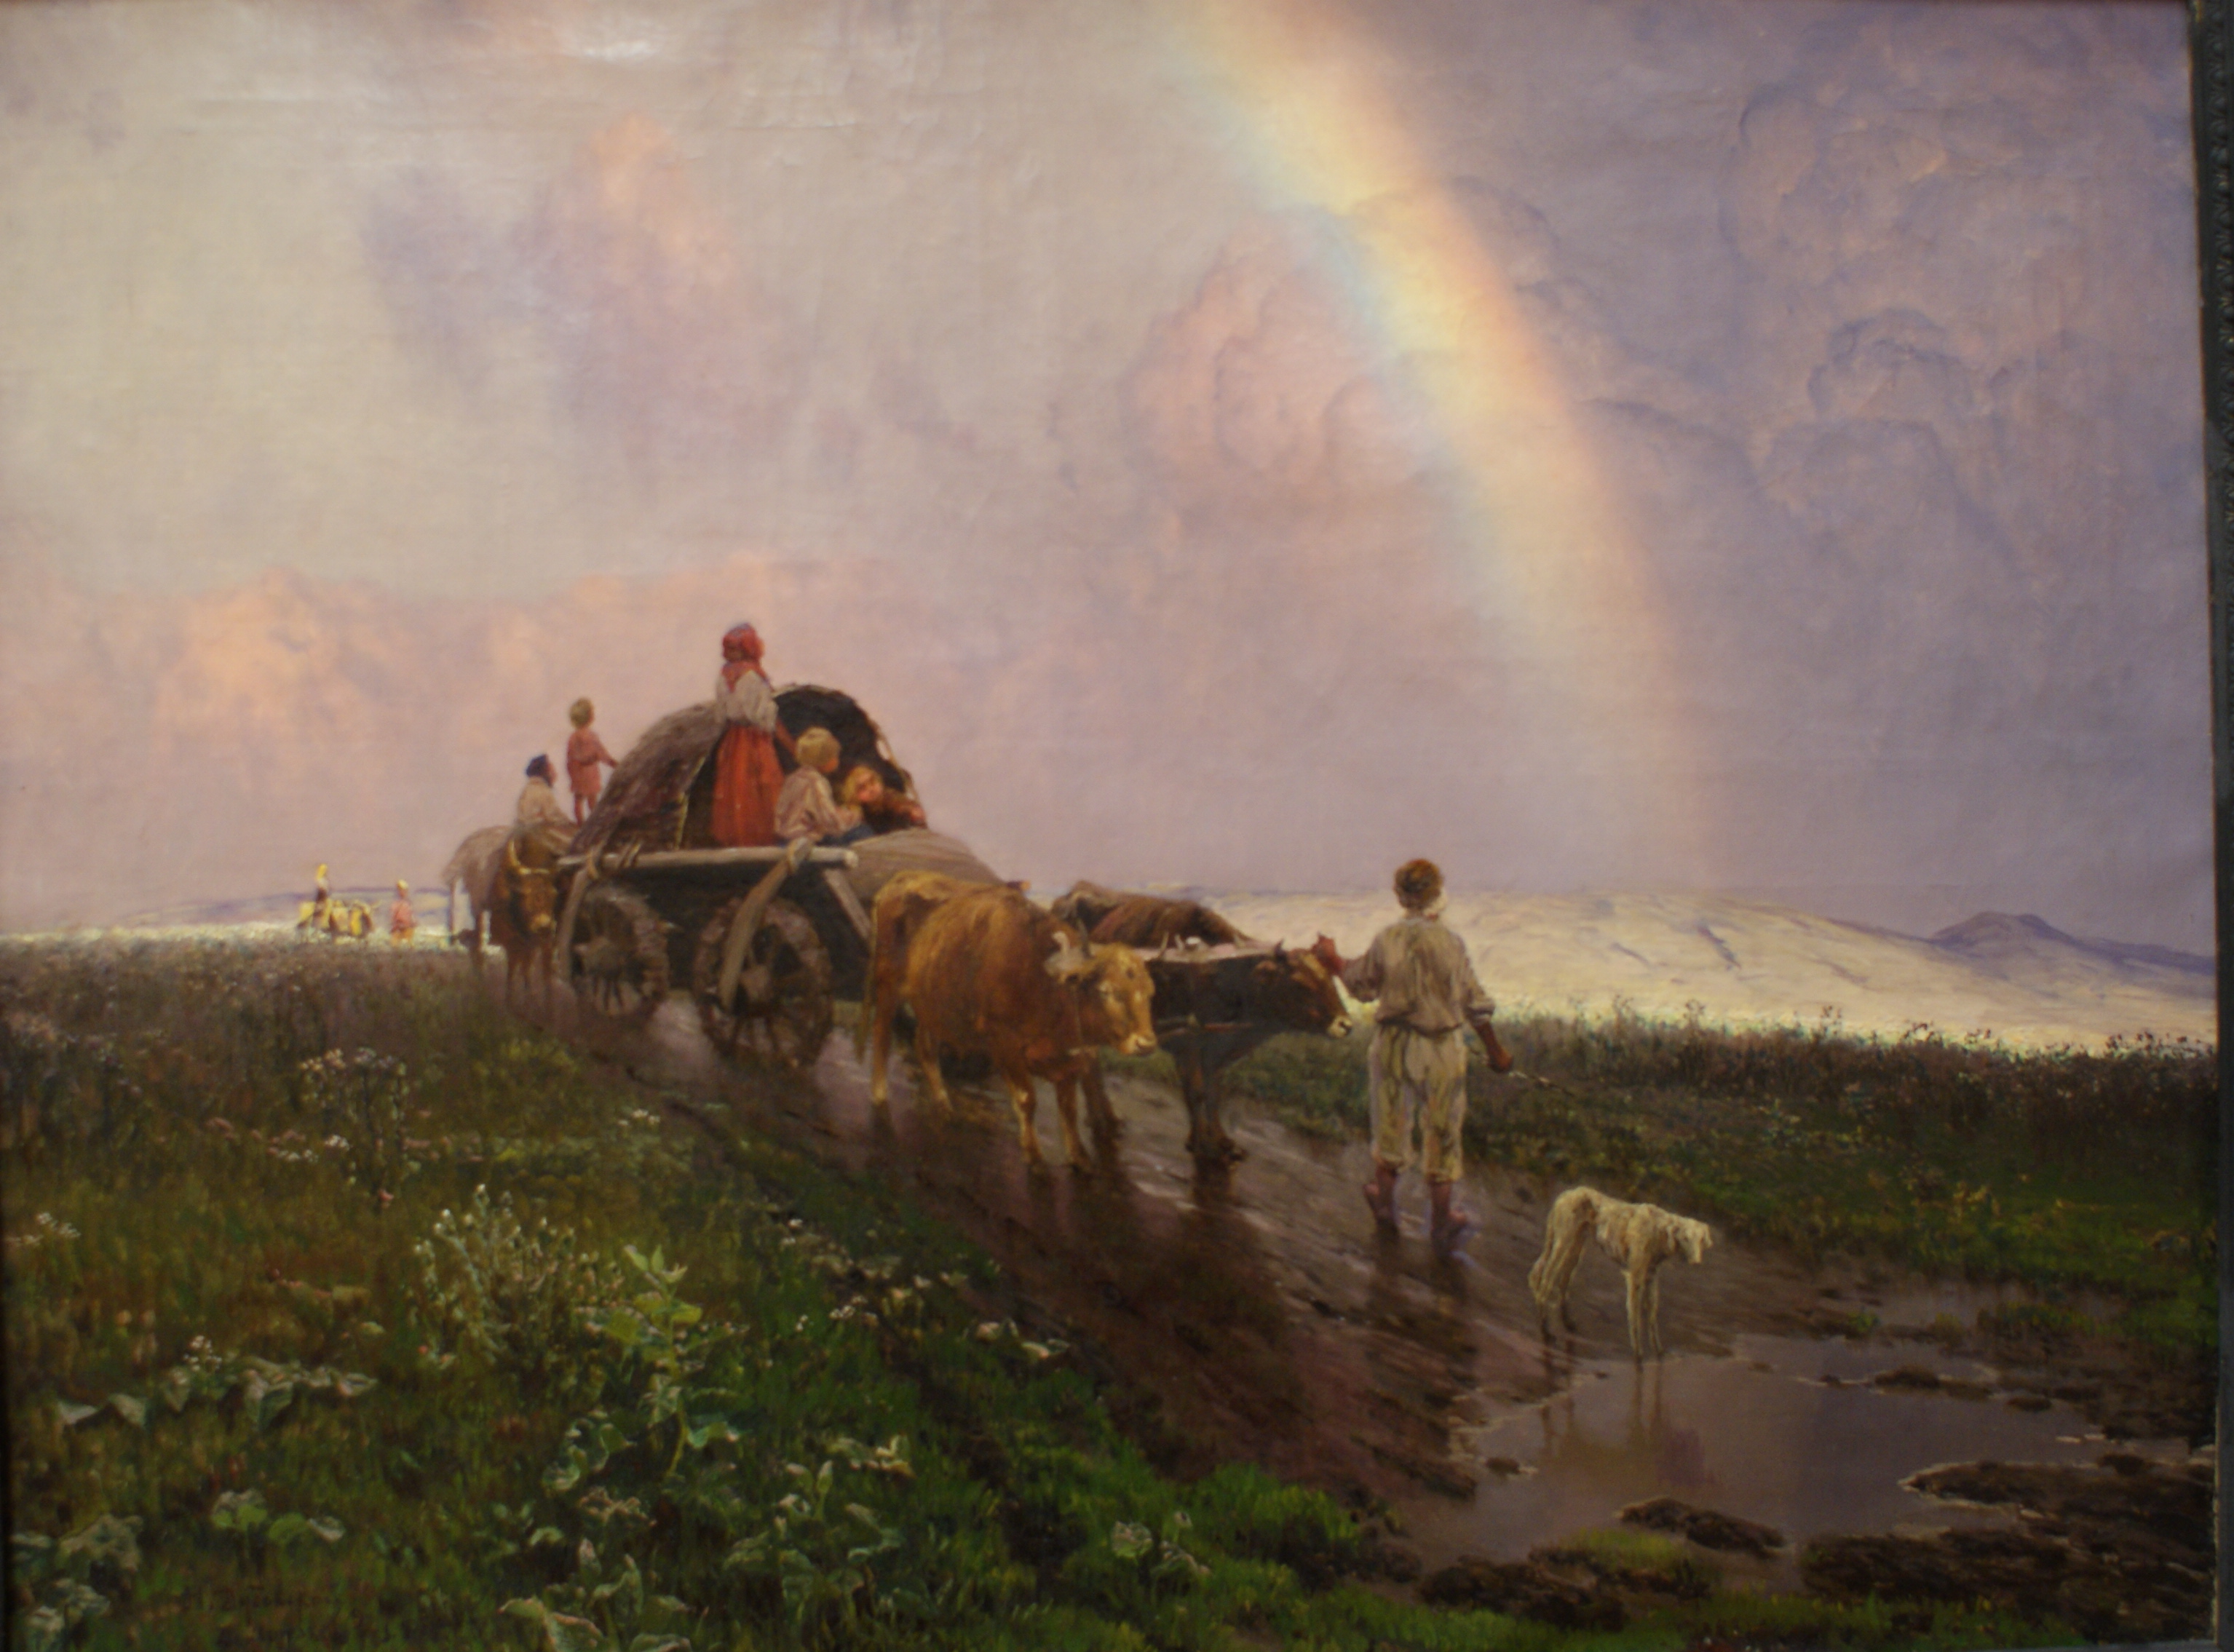 File:Nikolay Dubovskoy. Rainbow.jpg.